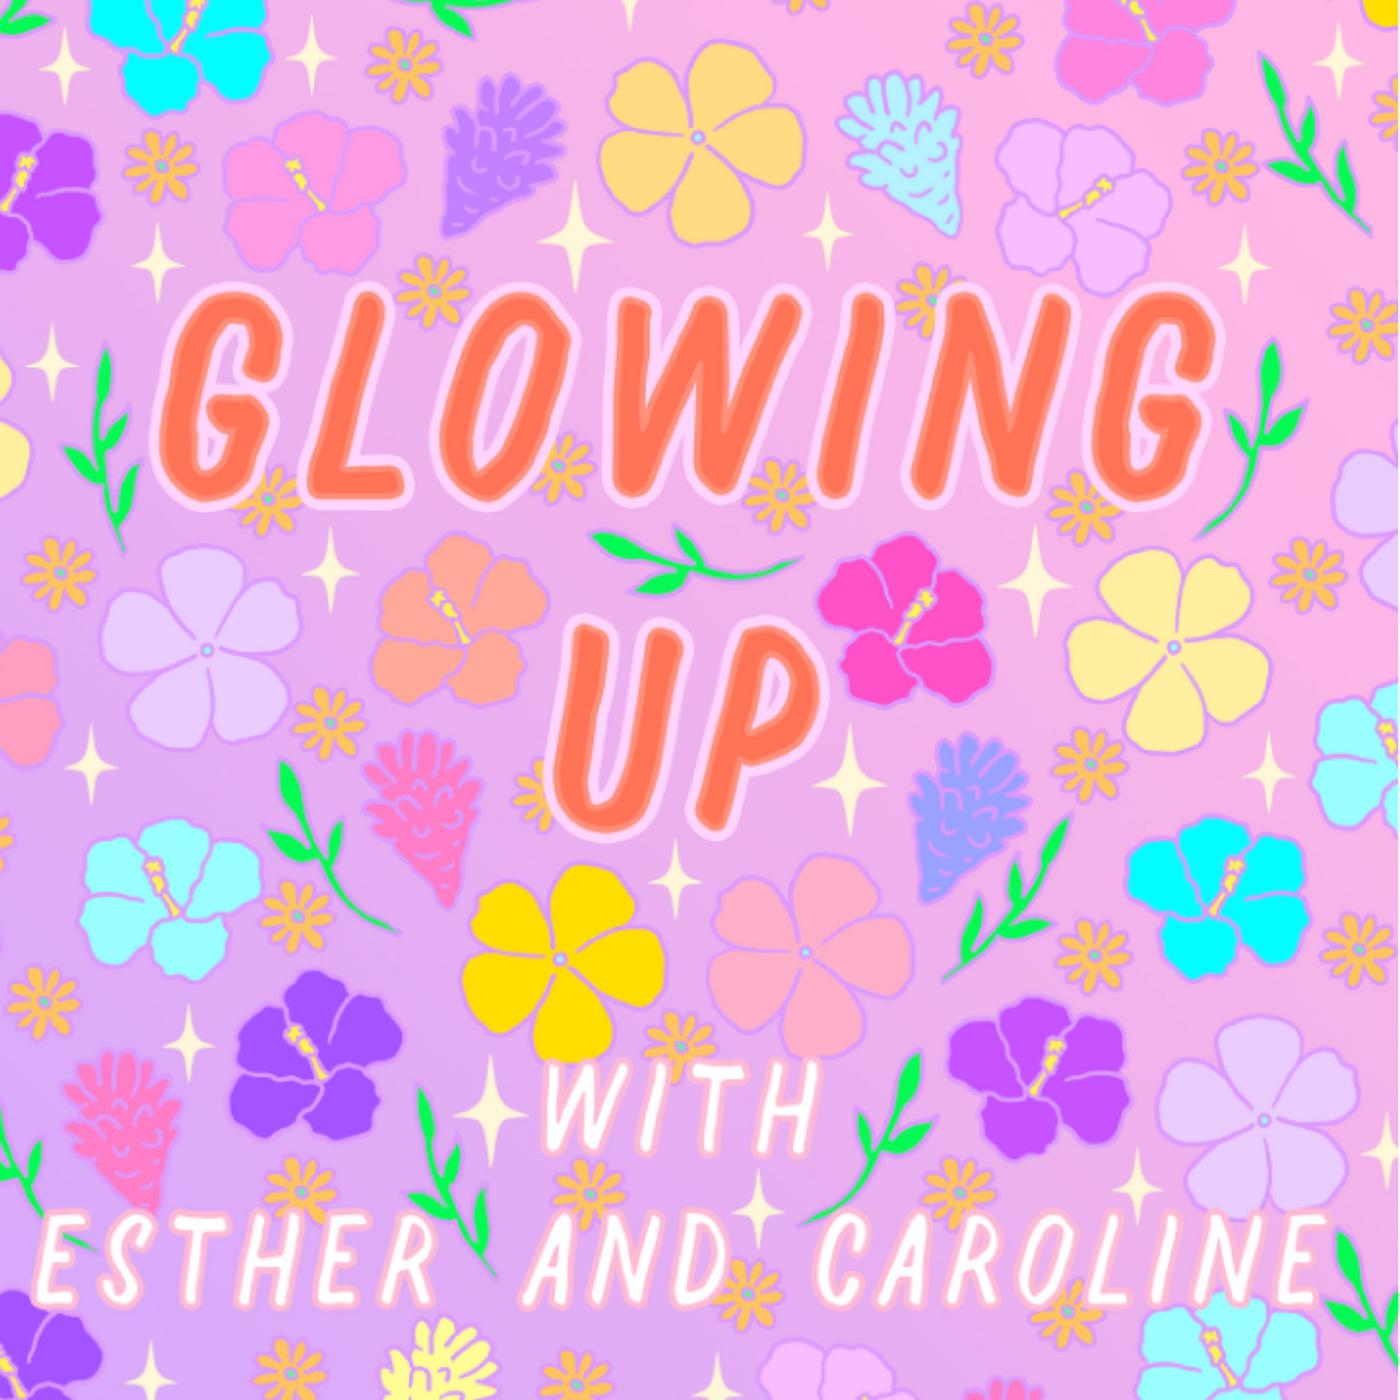 We ♥ Fat (with Lee From America) - Glowing Up (podcast) | Listen Notes